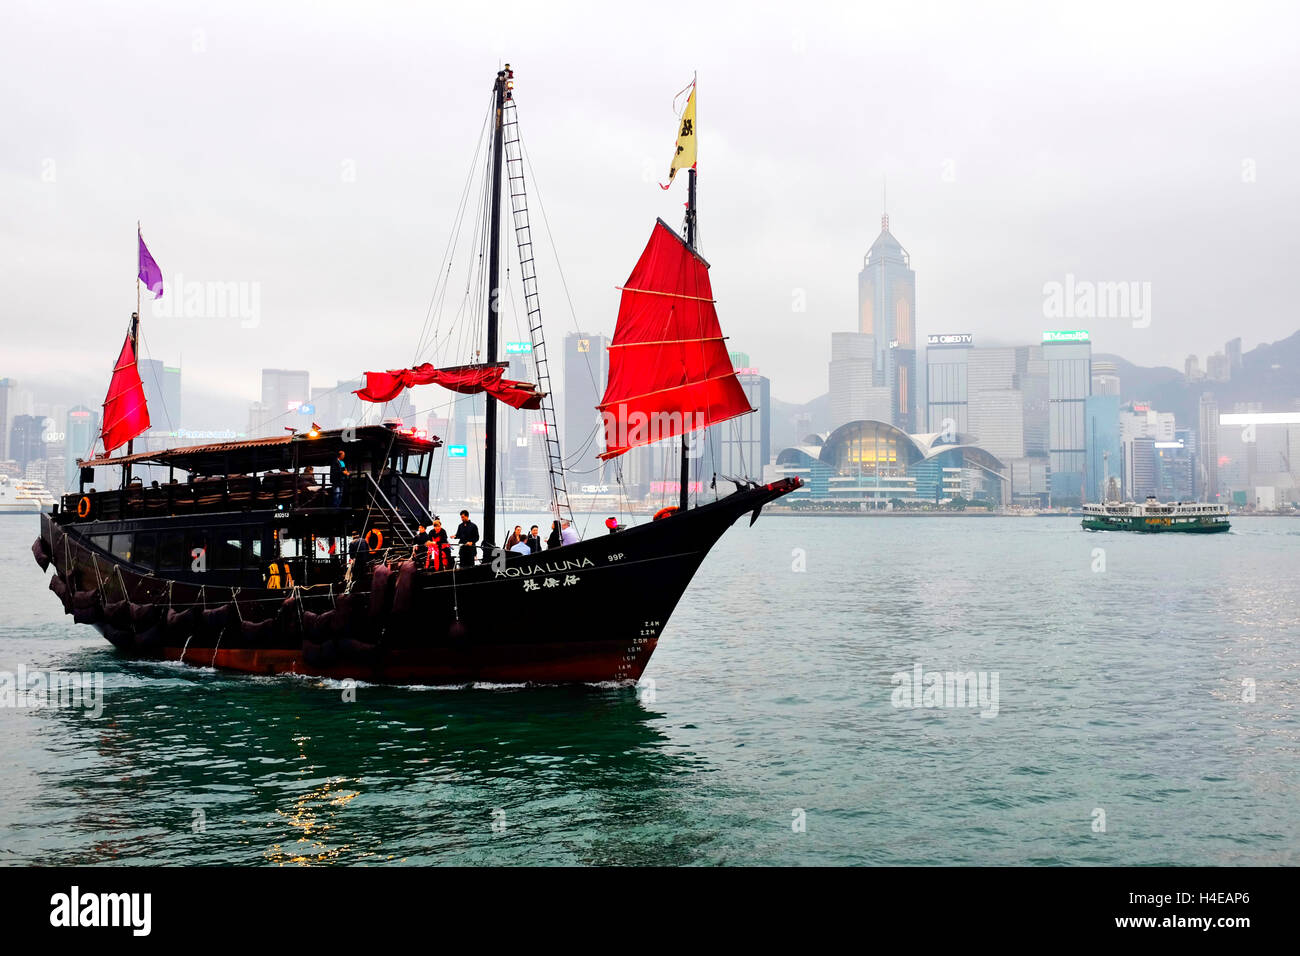 Red sail junk boat in the Victoria Harbour, Hong Kong - Stock Image